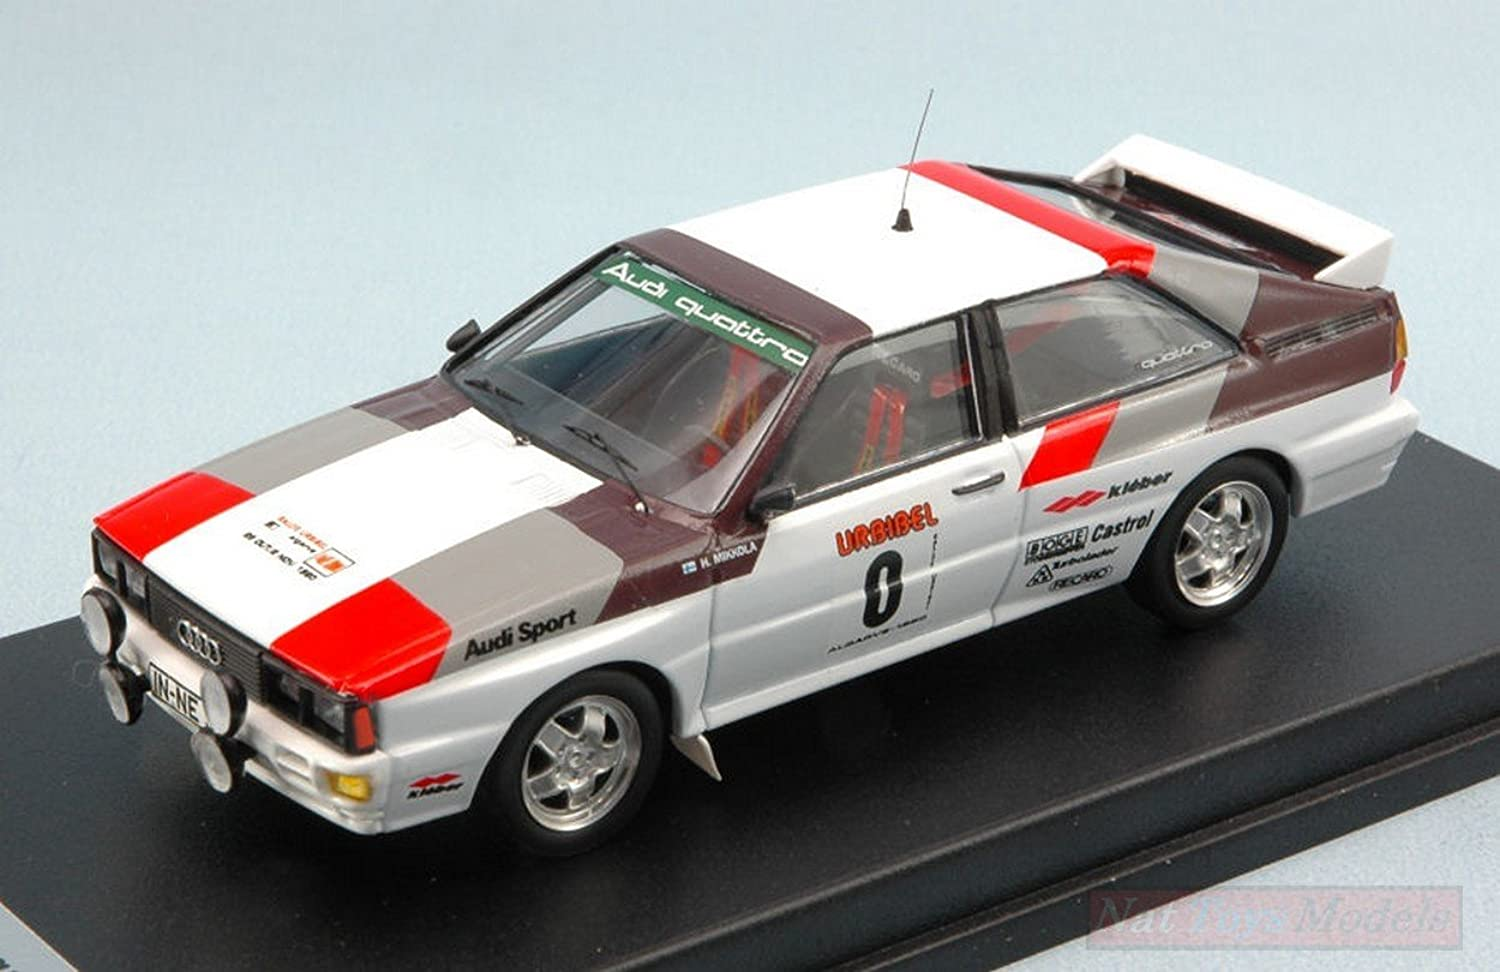 punto de venta en línea Trofeu TFRRAL35 Audi Quattro N.0 Rally of Algarve 1980 1980 1980 BUT Not Allowed 1 43 Compatible con  alto descuento